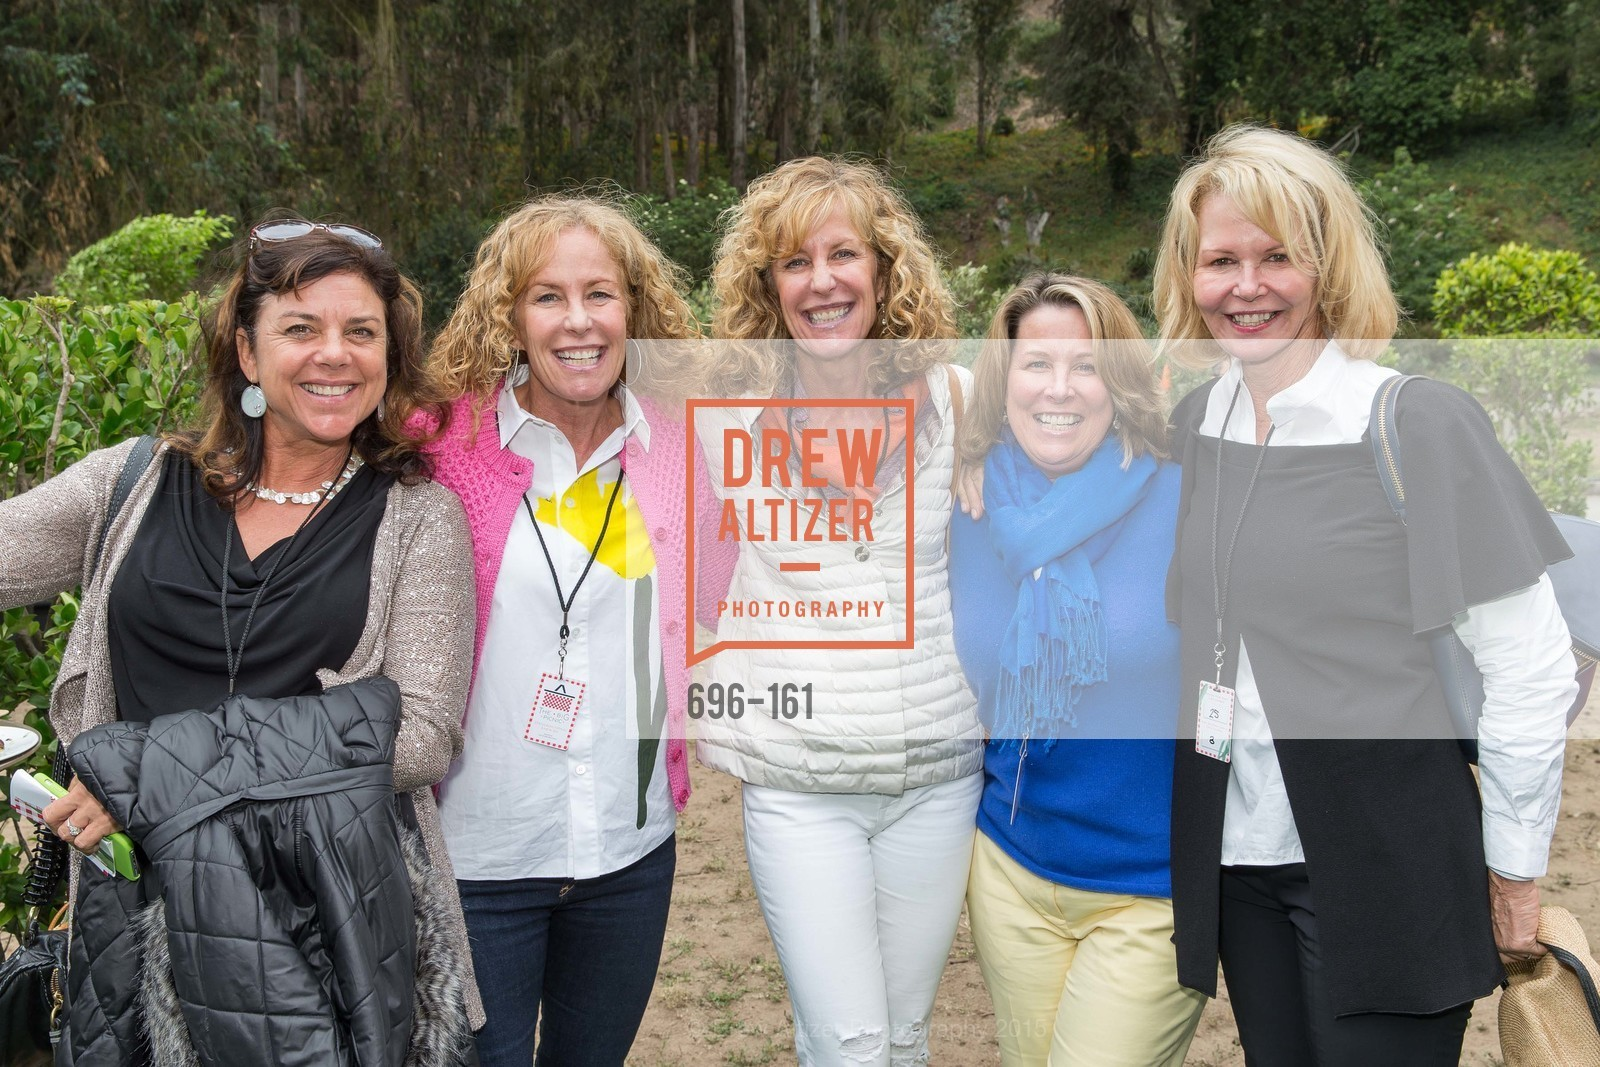 Connie Ring, Lori Corley, Lisa Steiny, Linda Walsh, Nancy Suiter, THE BIG PICNIC Kicking off  2015 Stern Grove Season, Stern Grove. 2750 19th Avenue, June 14th, 2015,Drew Altizer, Drew Altizer Photography, full-service agency, private events, San Francisco photographer, photographer california